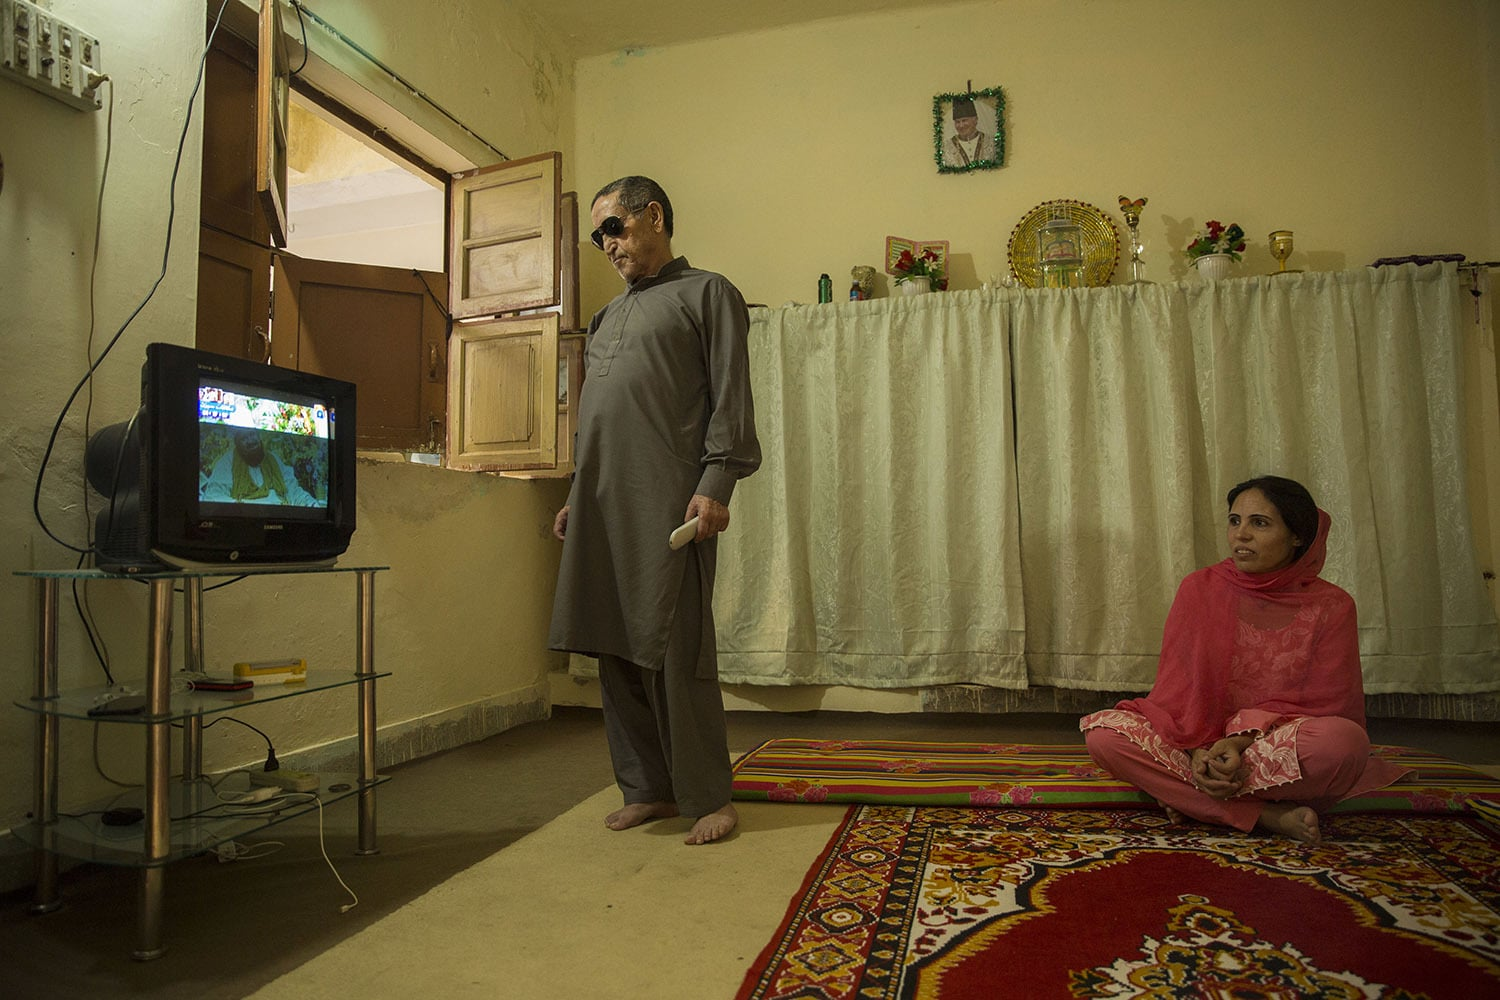 Nusrat Bibi watches television with her father Dost Ali who has been ill for many years, May 18, 2020, in Rawalpindi.